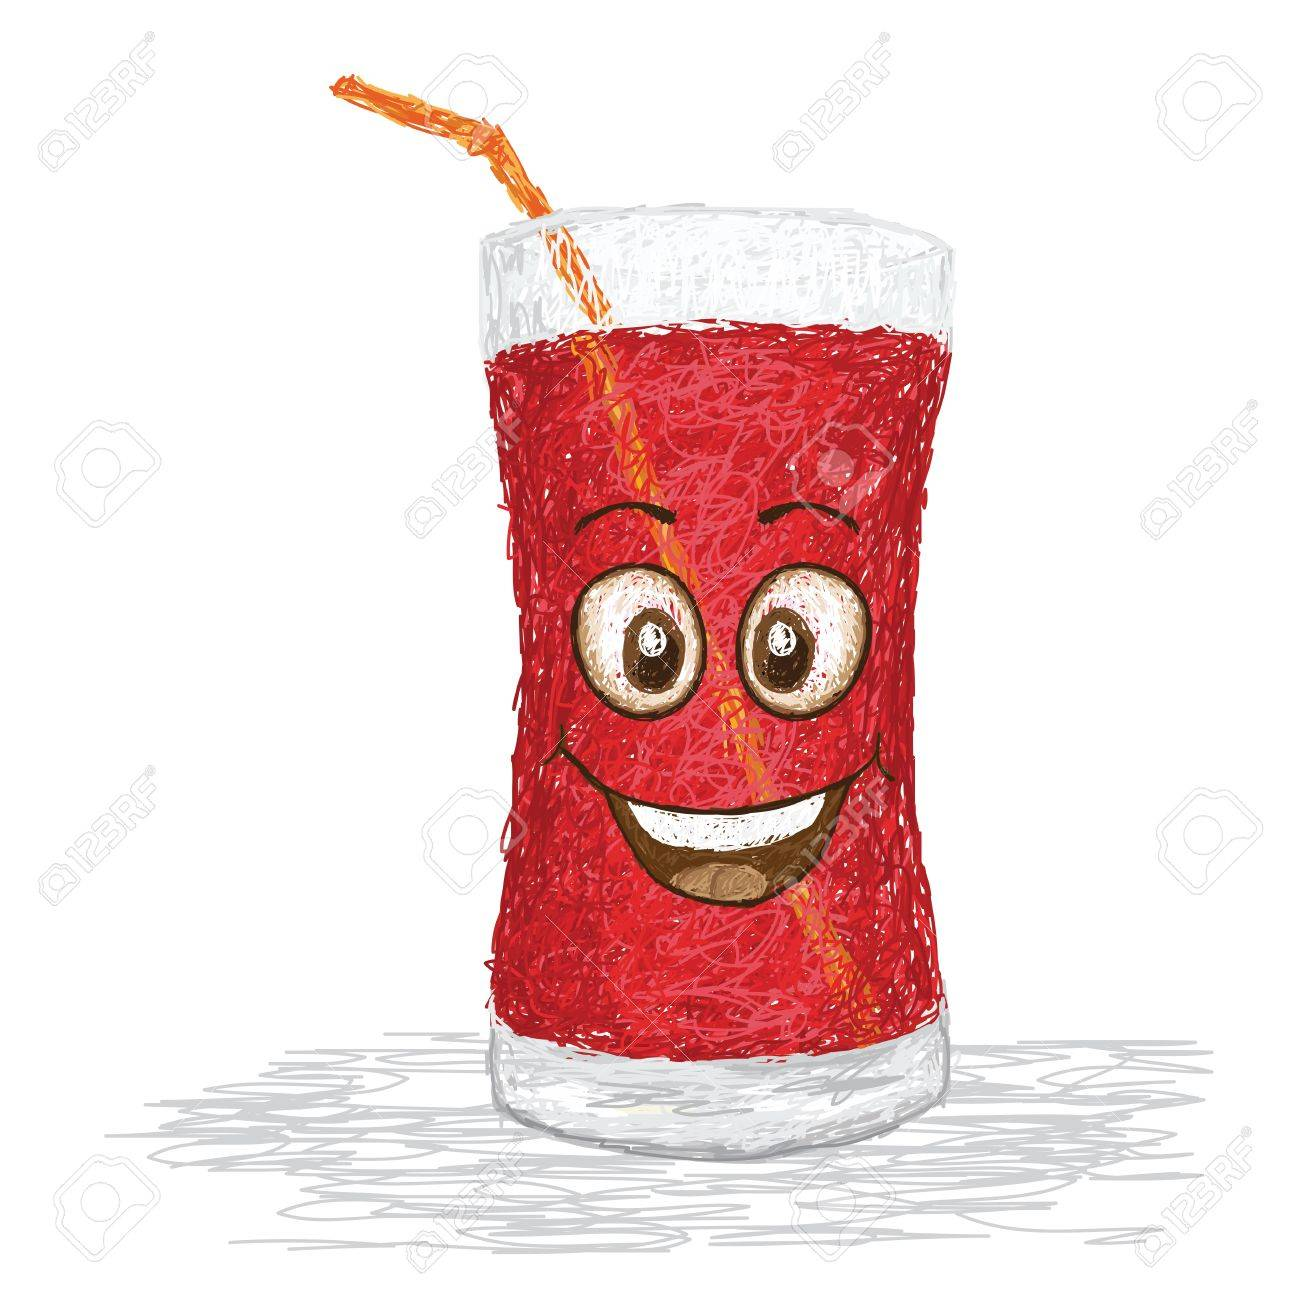 Happy strawberry juice cartoon character smiling royalty free